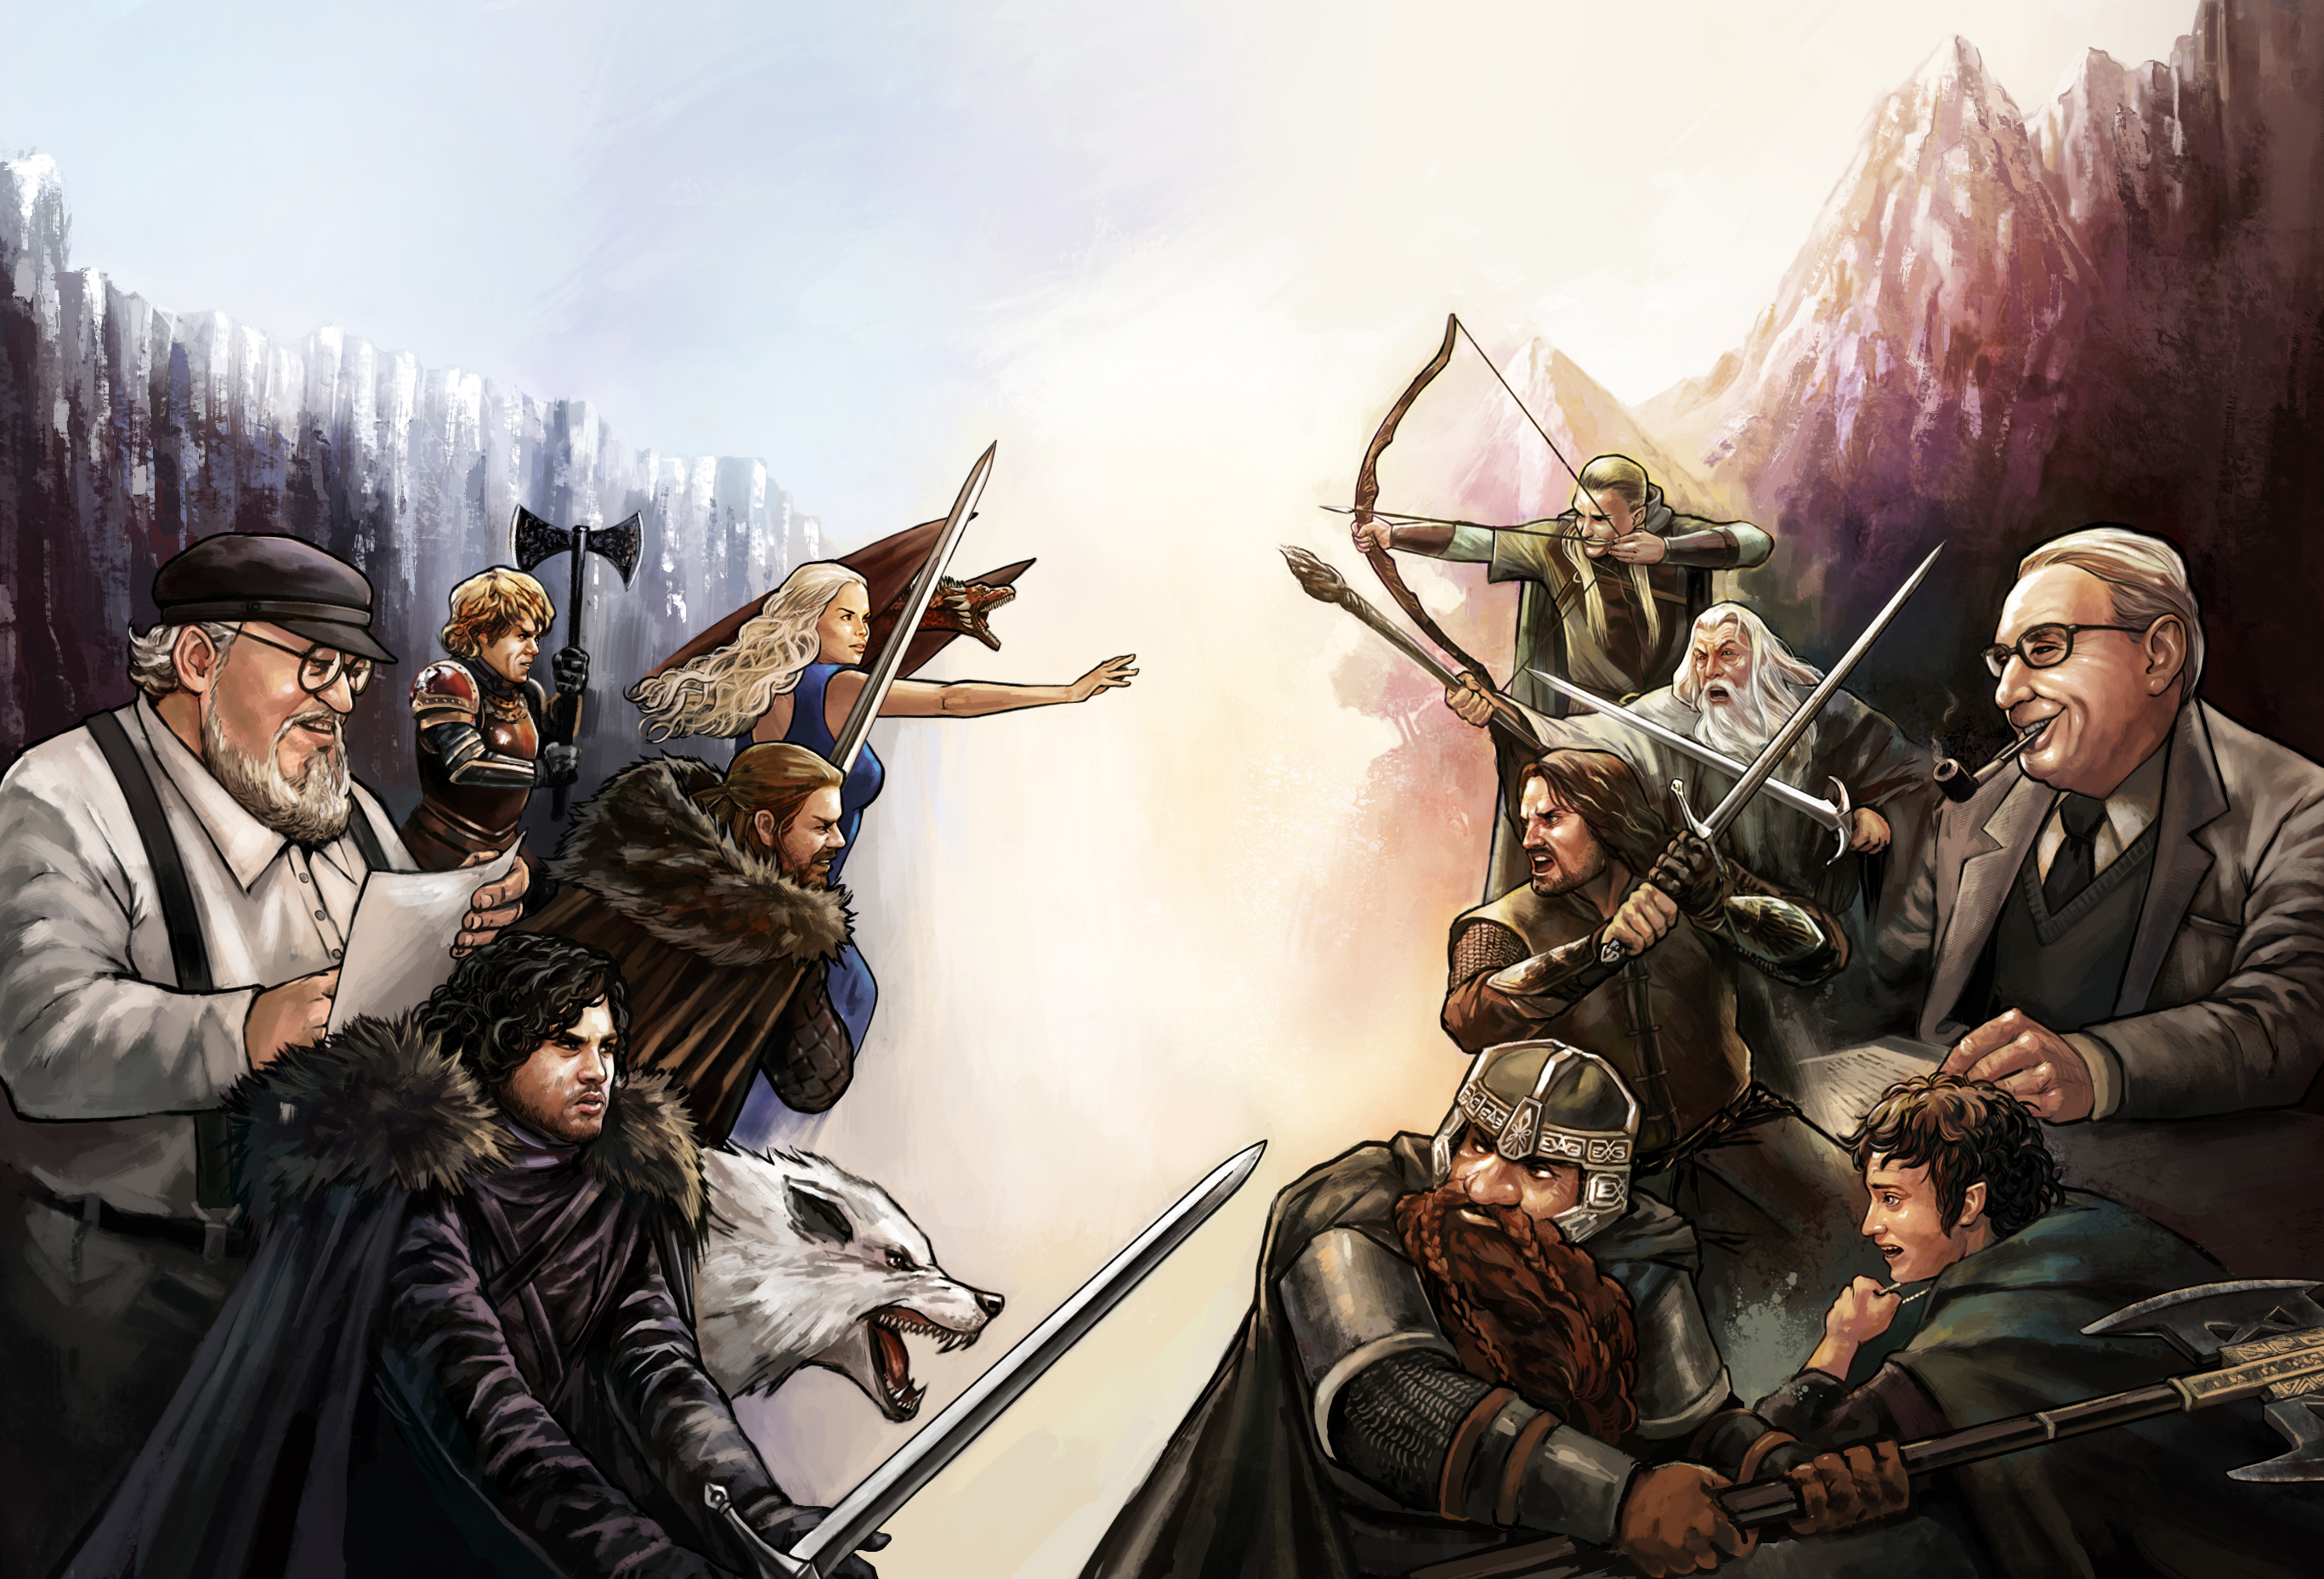 duel_game_of_thrones_x_lord_of_the_rings_by_murilo_araujo-d7gtmxi